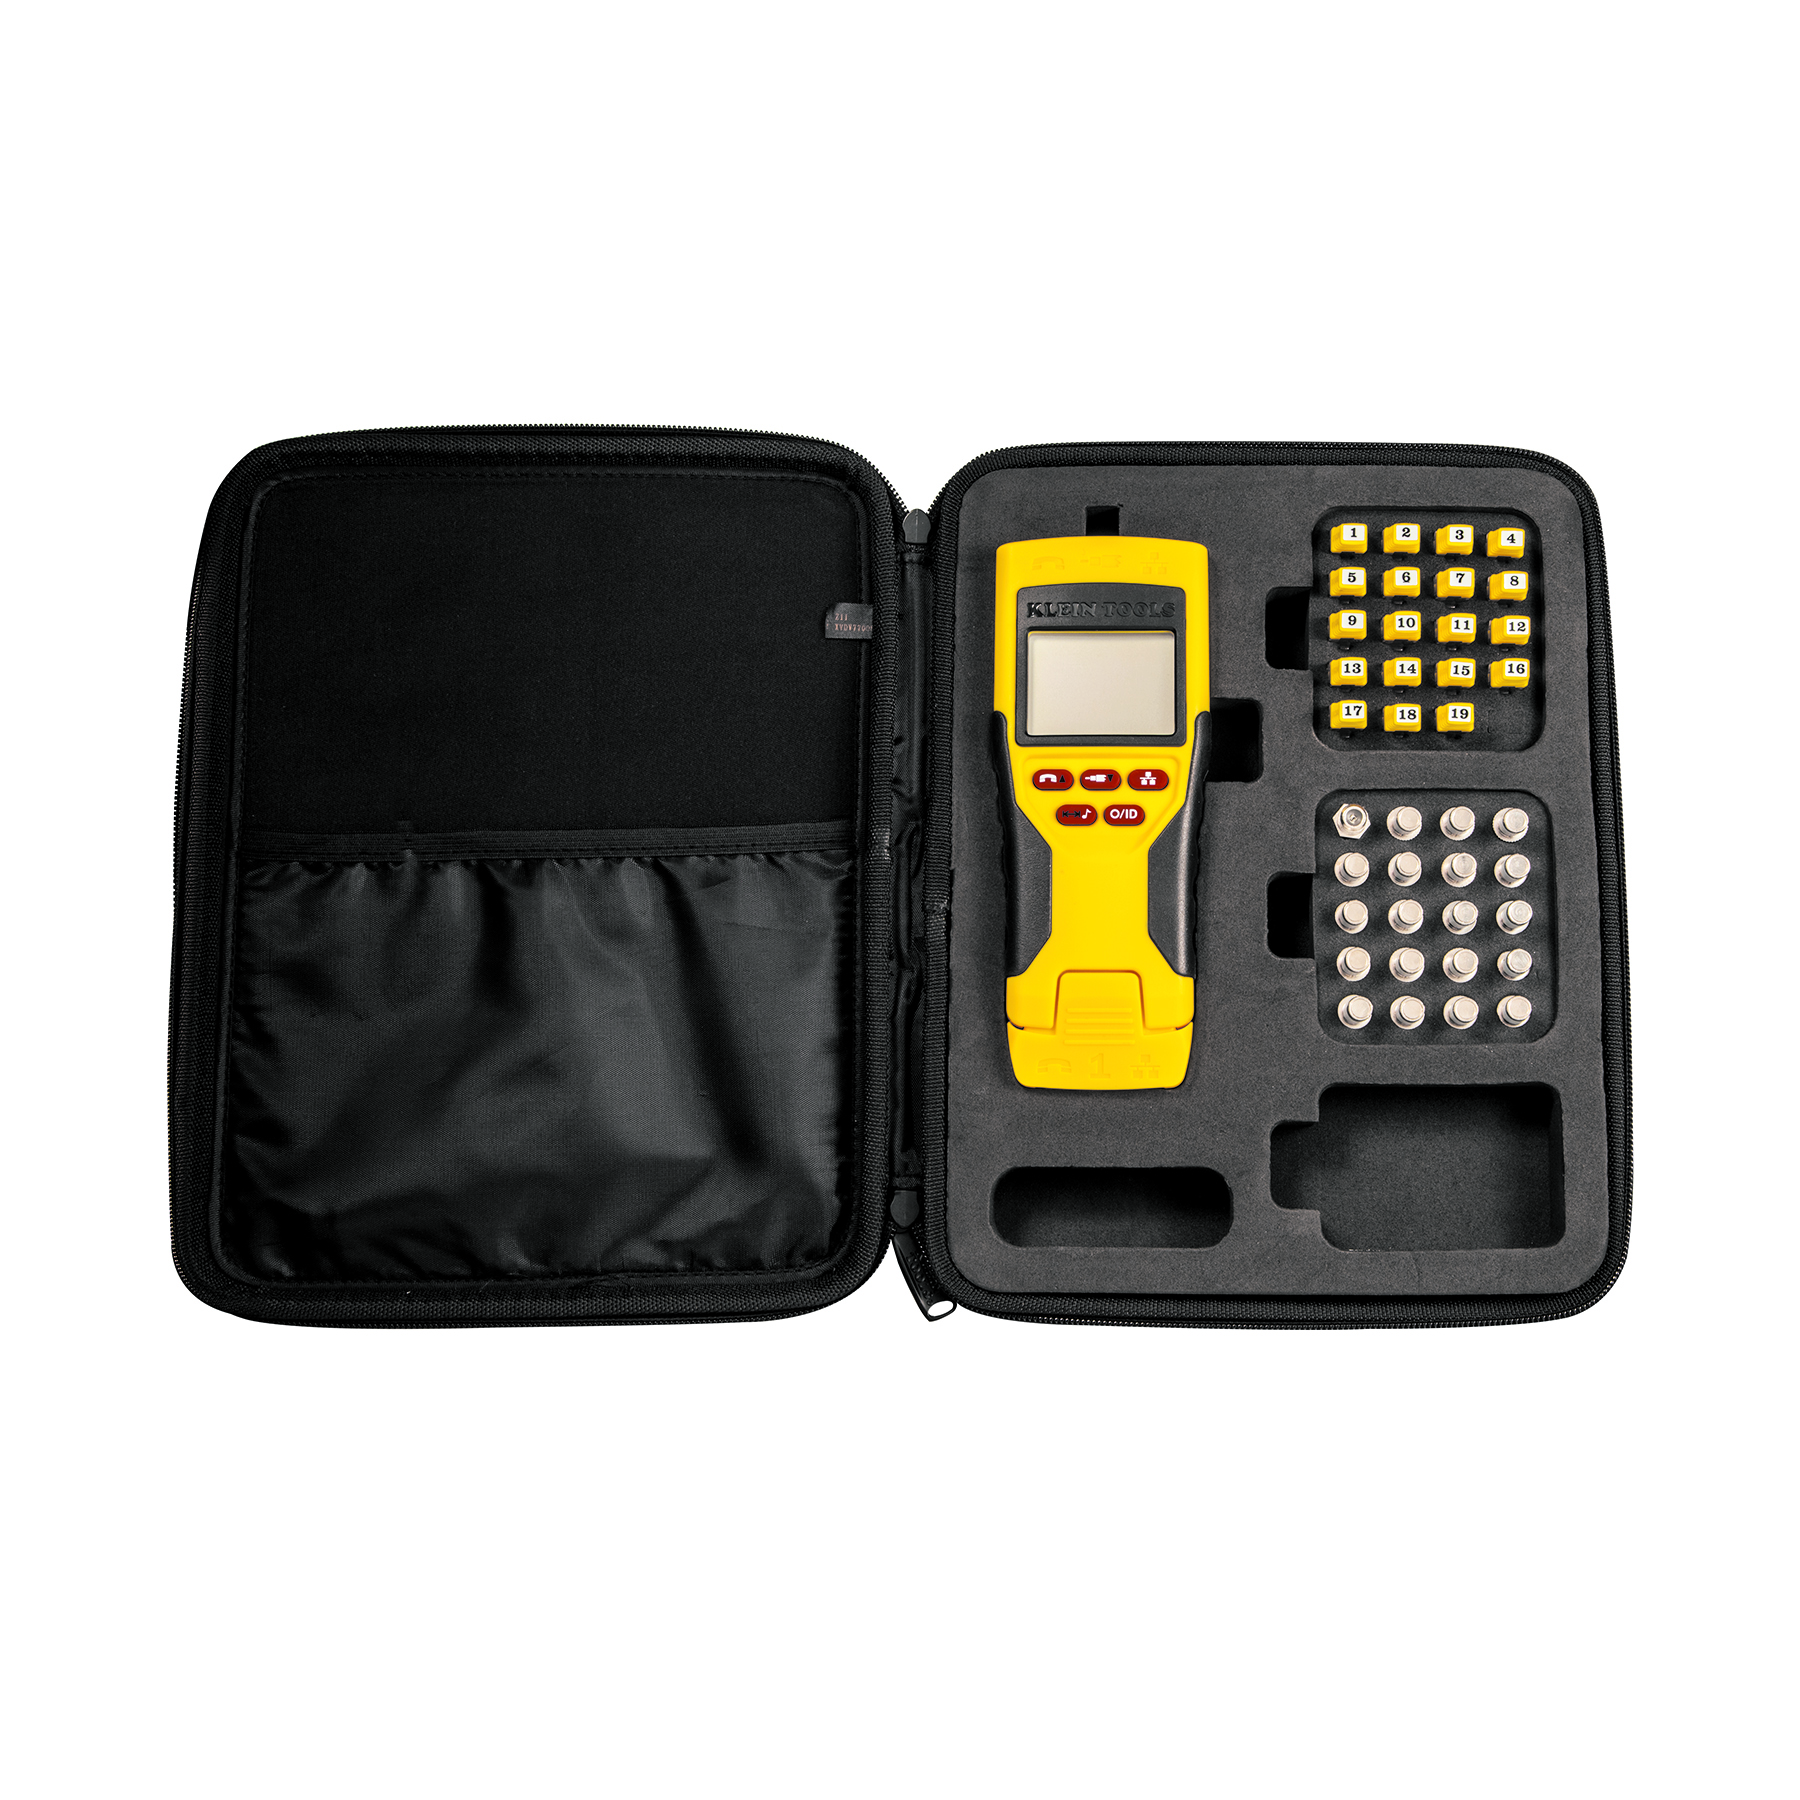 Scout Pro 2 Lt Tester Remote Kit Vdv501 825 Klein Tools For Barel Rj45 Double Female To Images